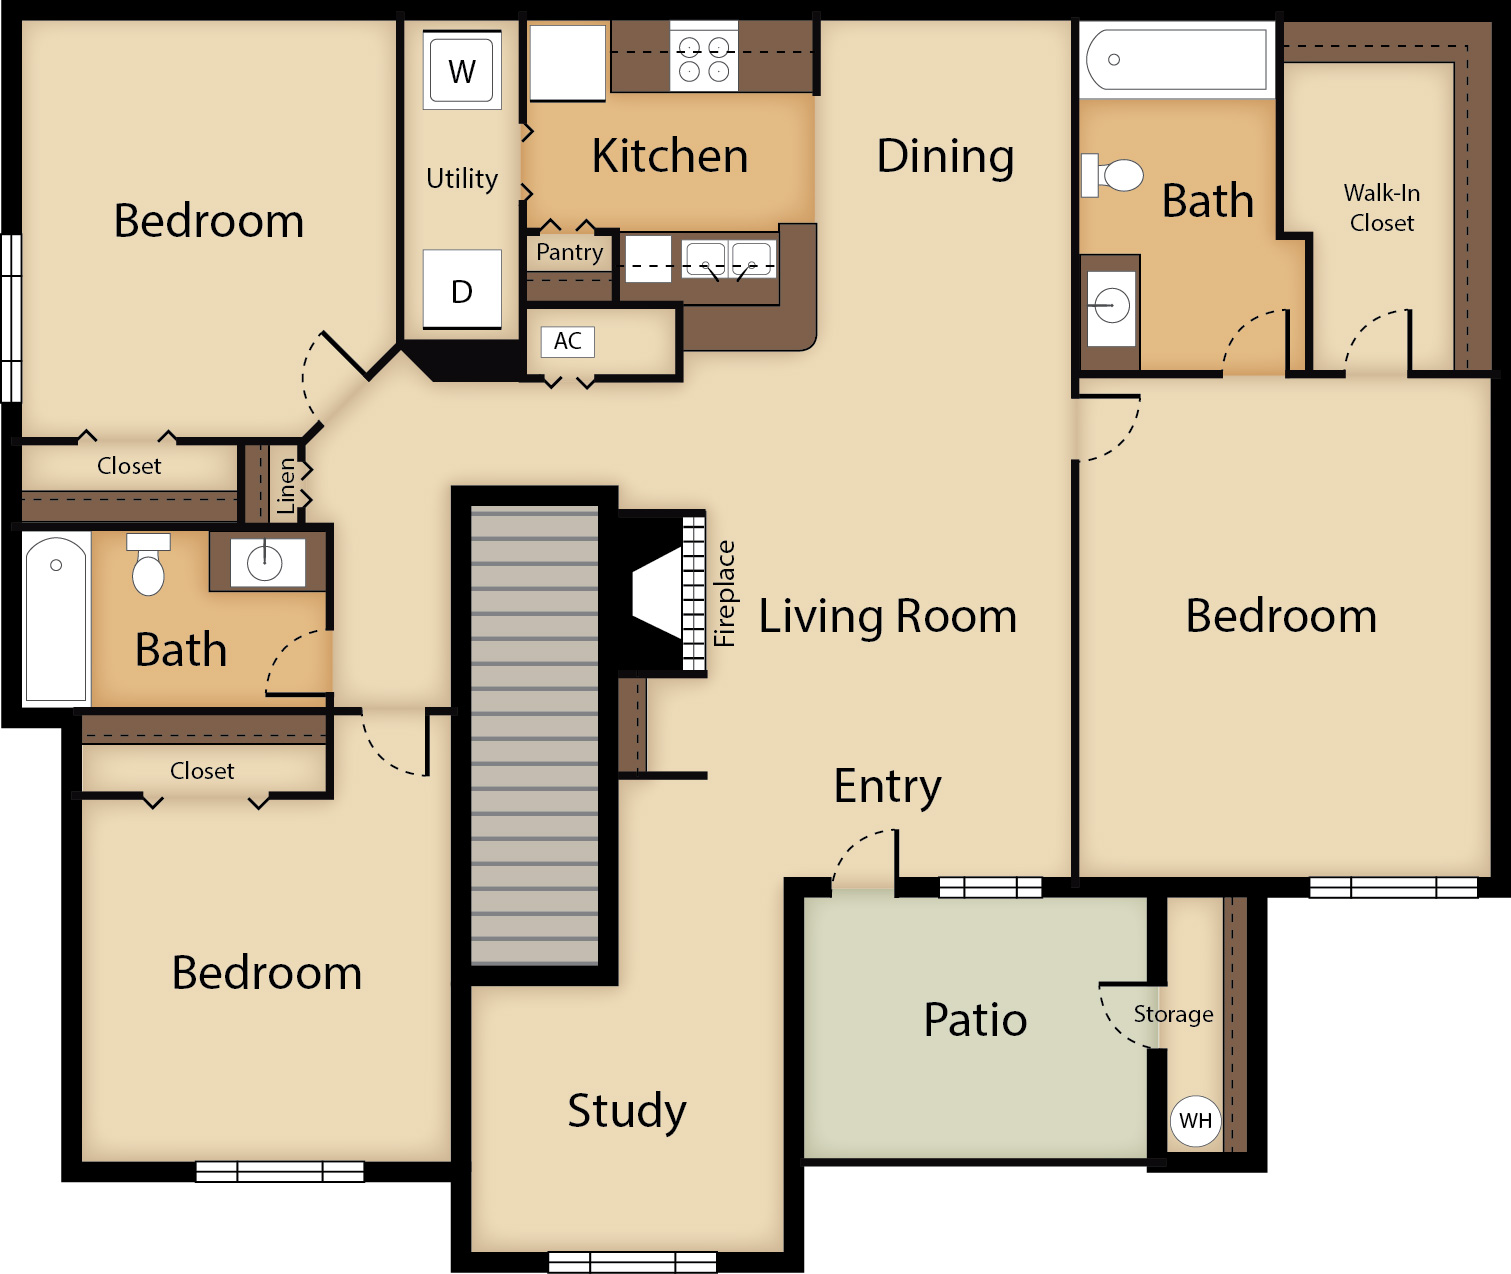 3 Bedroom with Study